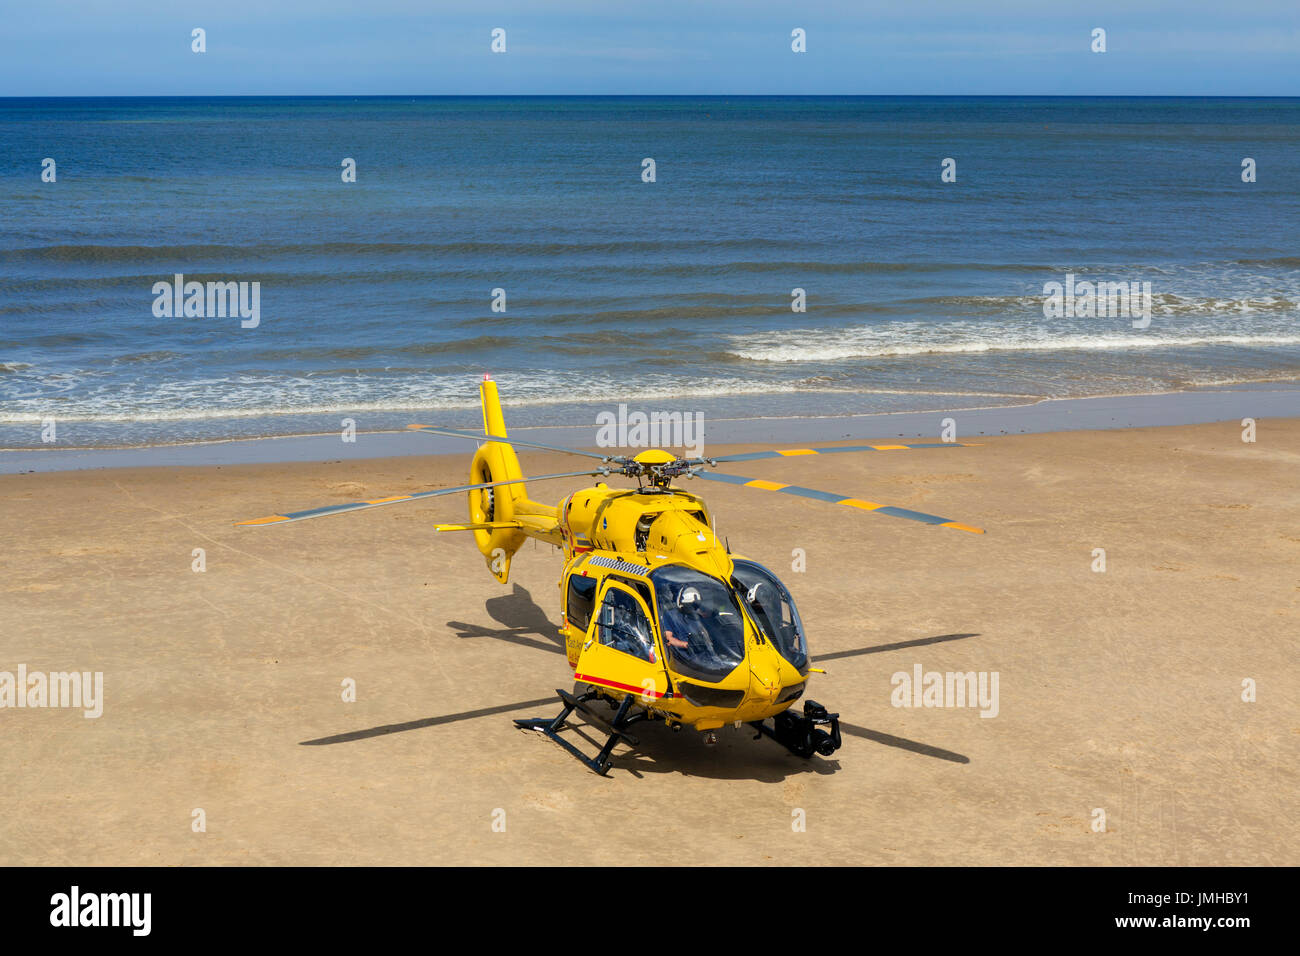 East Anglia Air Ambulance helicopter on the beach in Cromer, Norfolk, England, UK - Stock Image